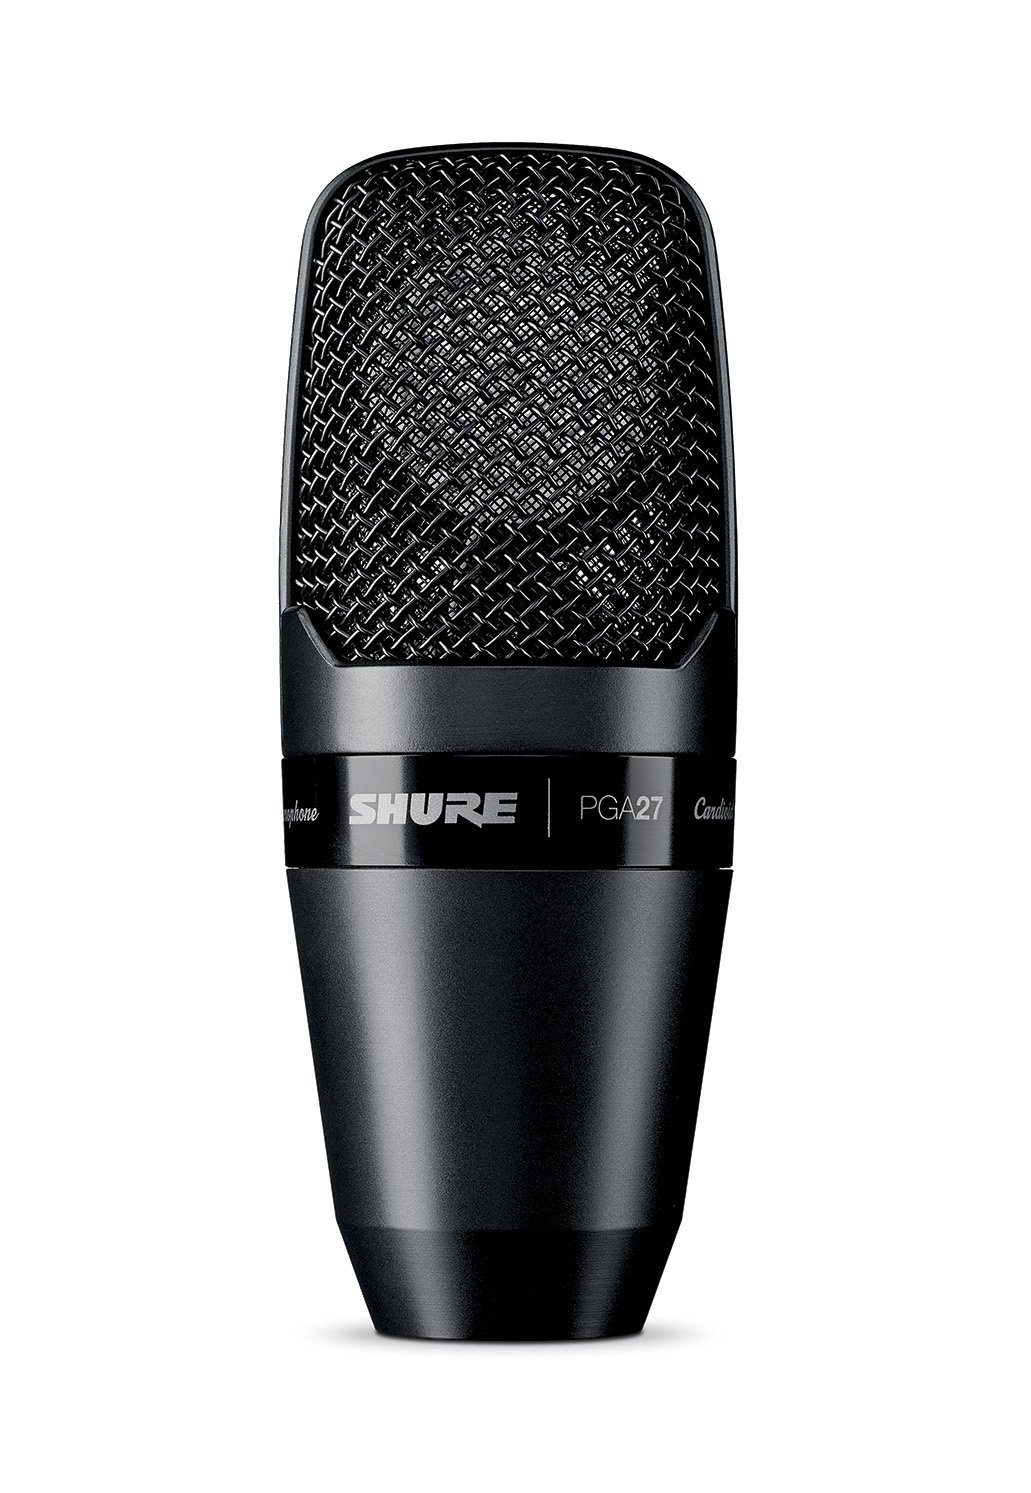 Shure PGA27-LC Large-Diaphragm Side-Address Cardioid Condenser Microphone with Shock-Mount and Carrying Case, No Cable Shure Incorporated